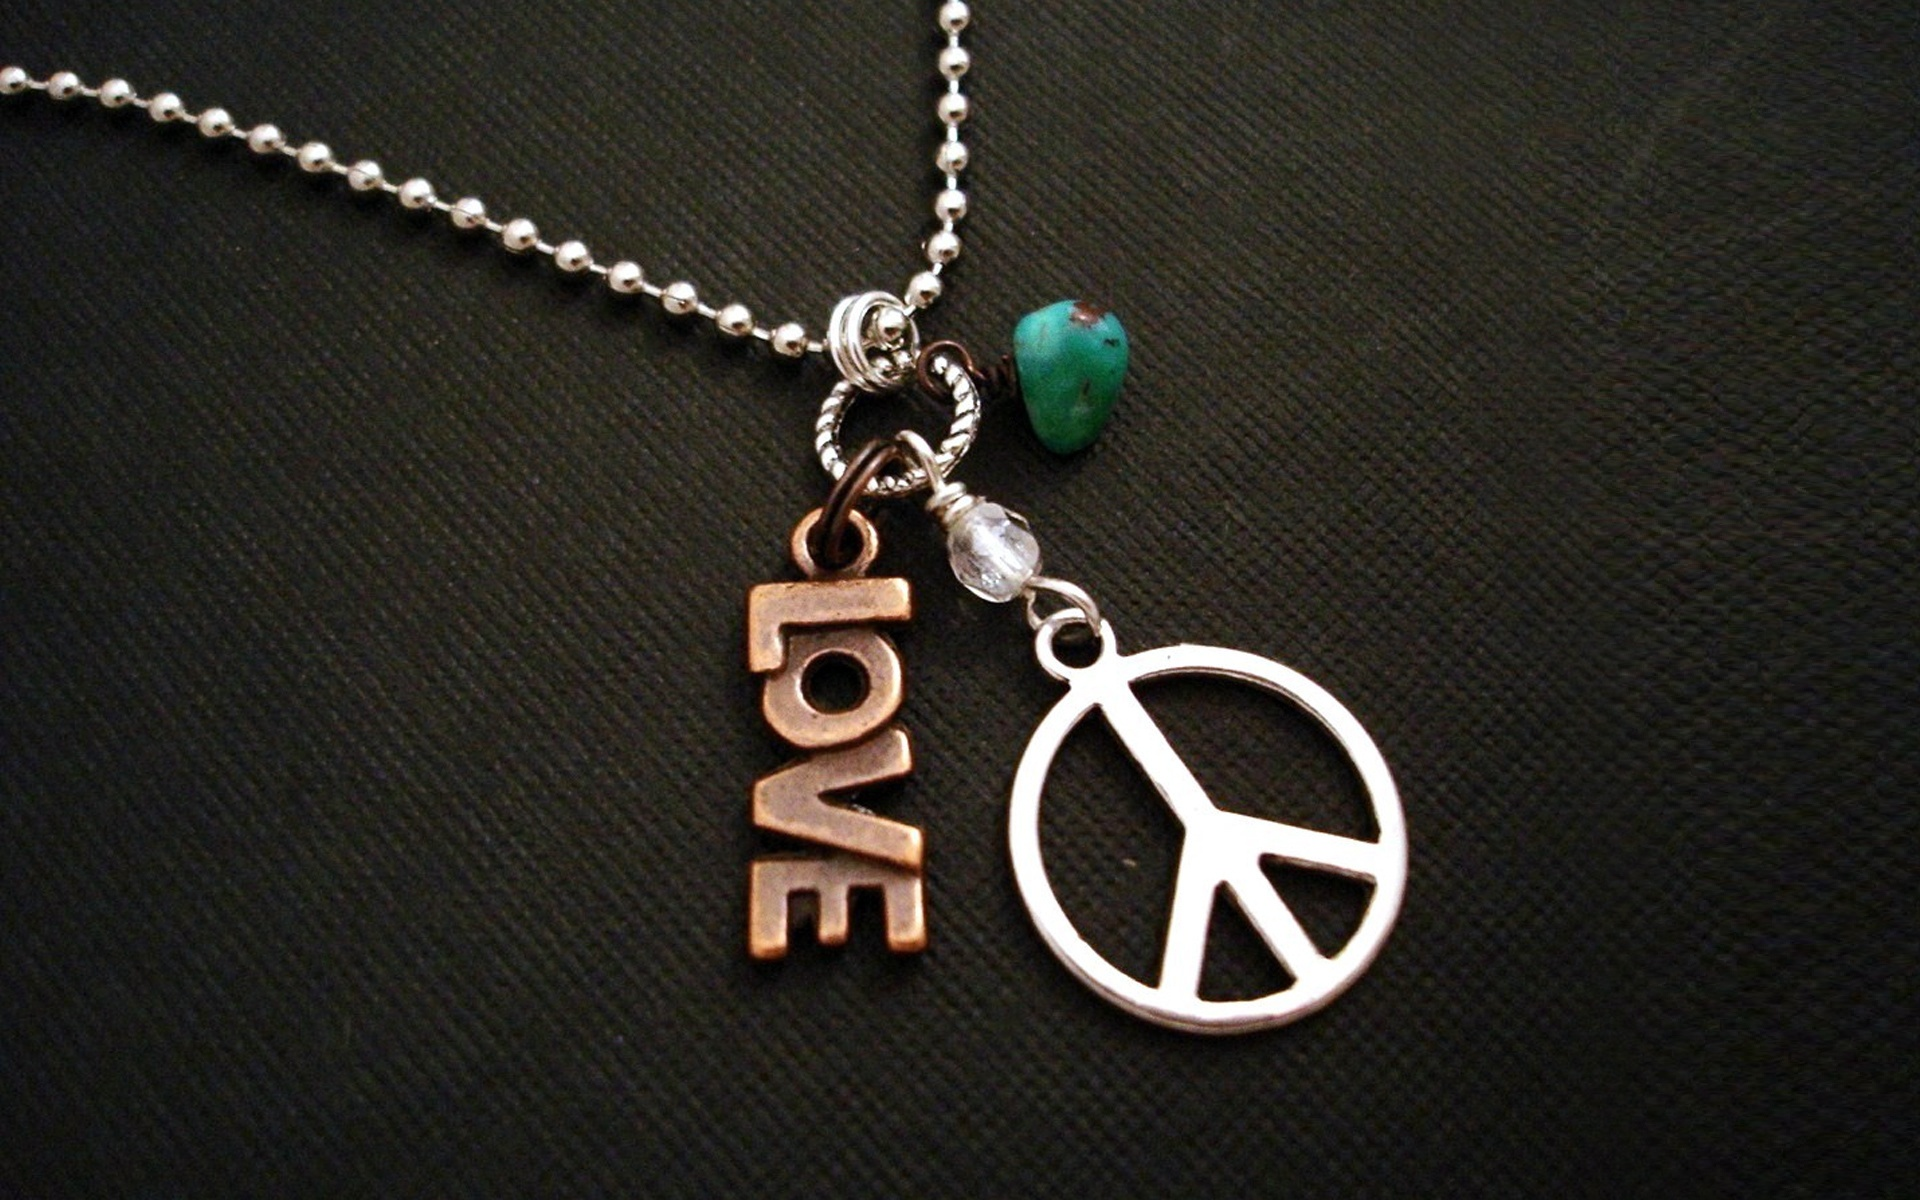 Love and peace Wallpapers Love and peace Backgrounds Love and peace 1920x1200